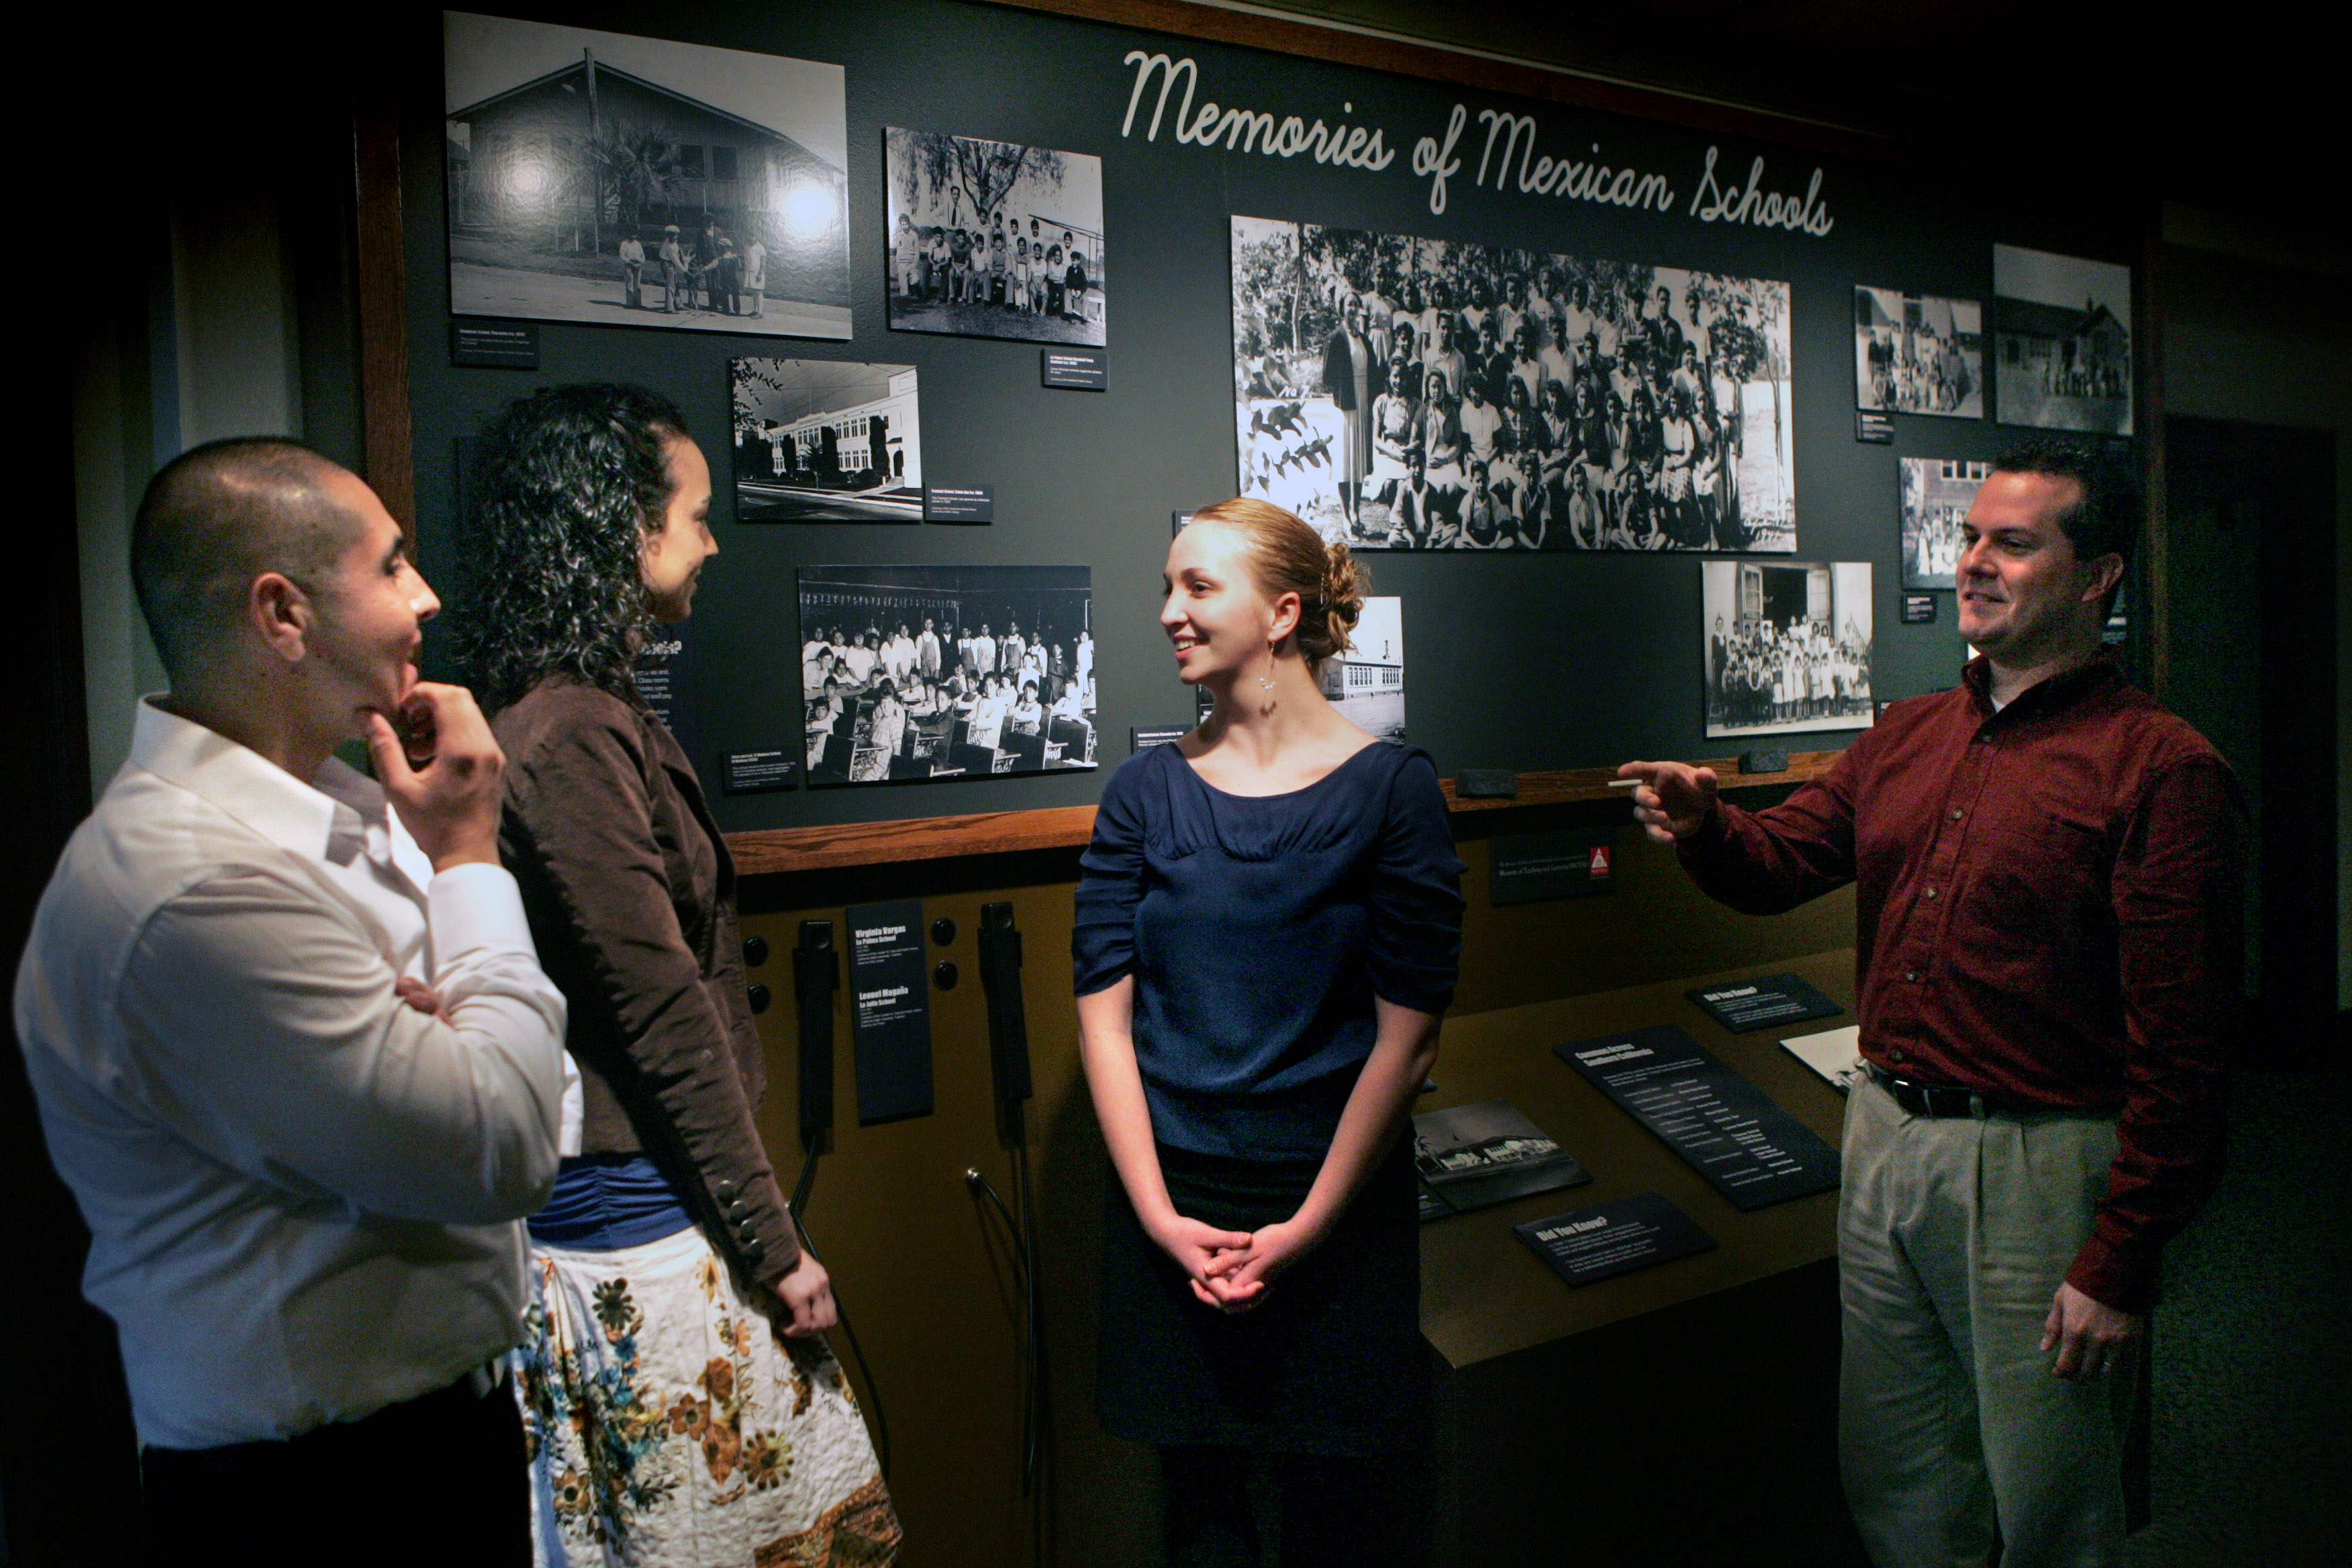 an introduction to the history of museum of tolerance Download this project profile as a pdf the museum of tolerance in los angeles acquired an early letter written by adolf hitler calling for the elimination of the jewish people.